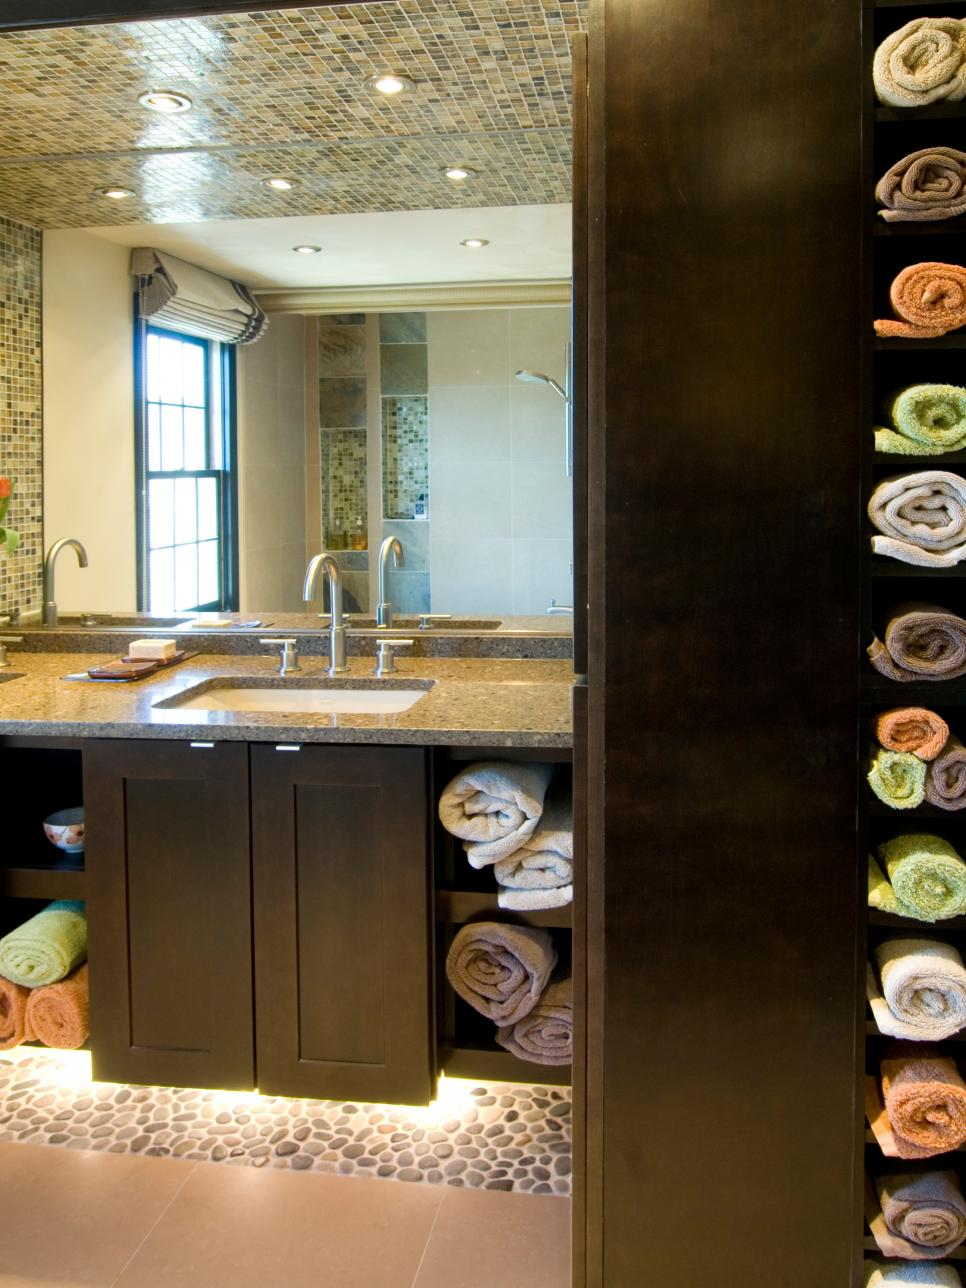 Creative bathroom storage ideas - Creative Bathroom Storage Ideas 0